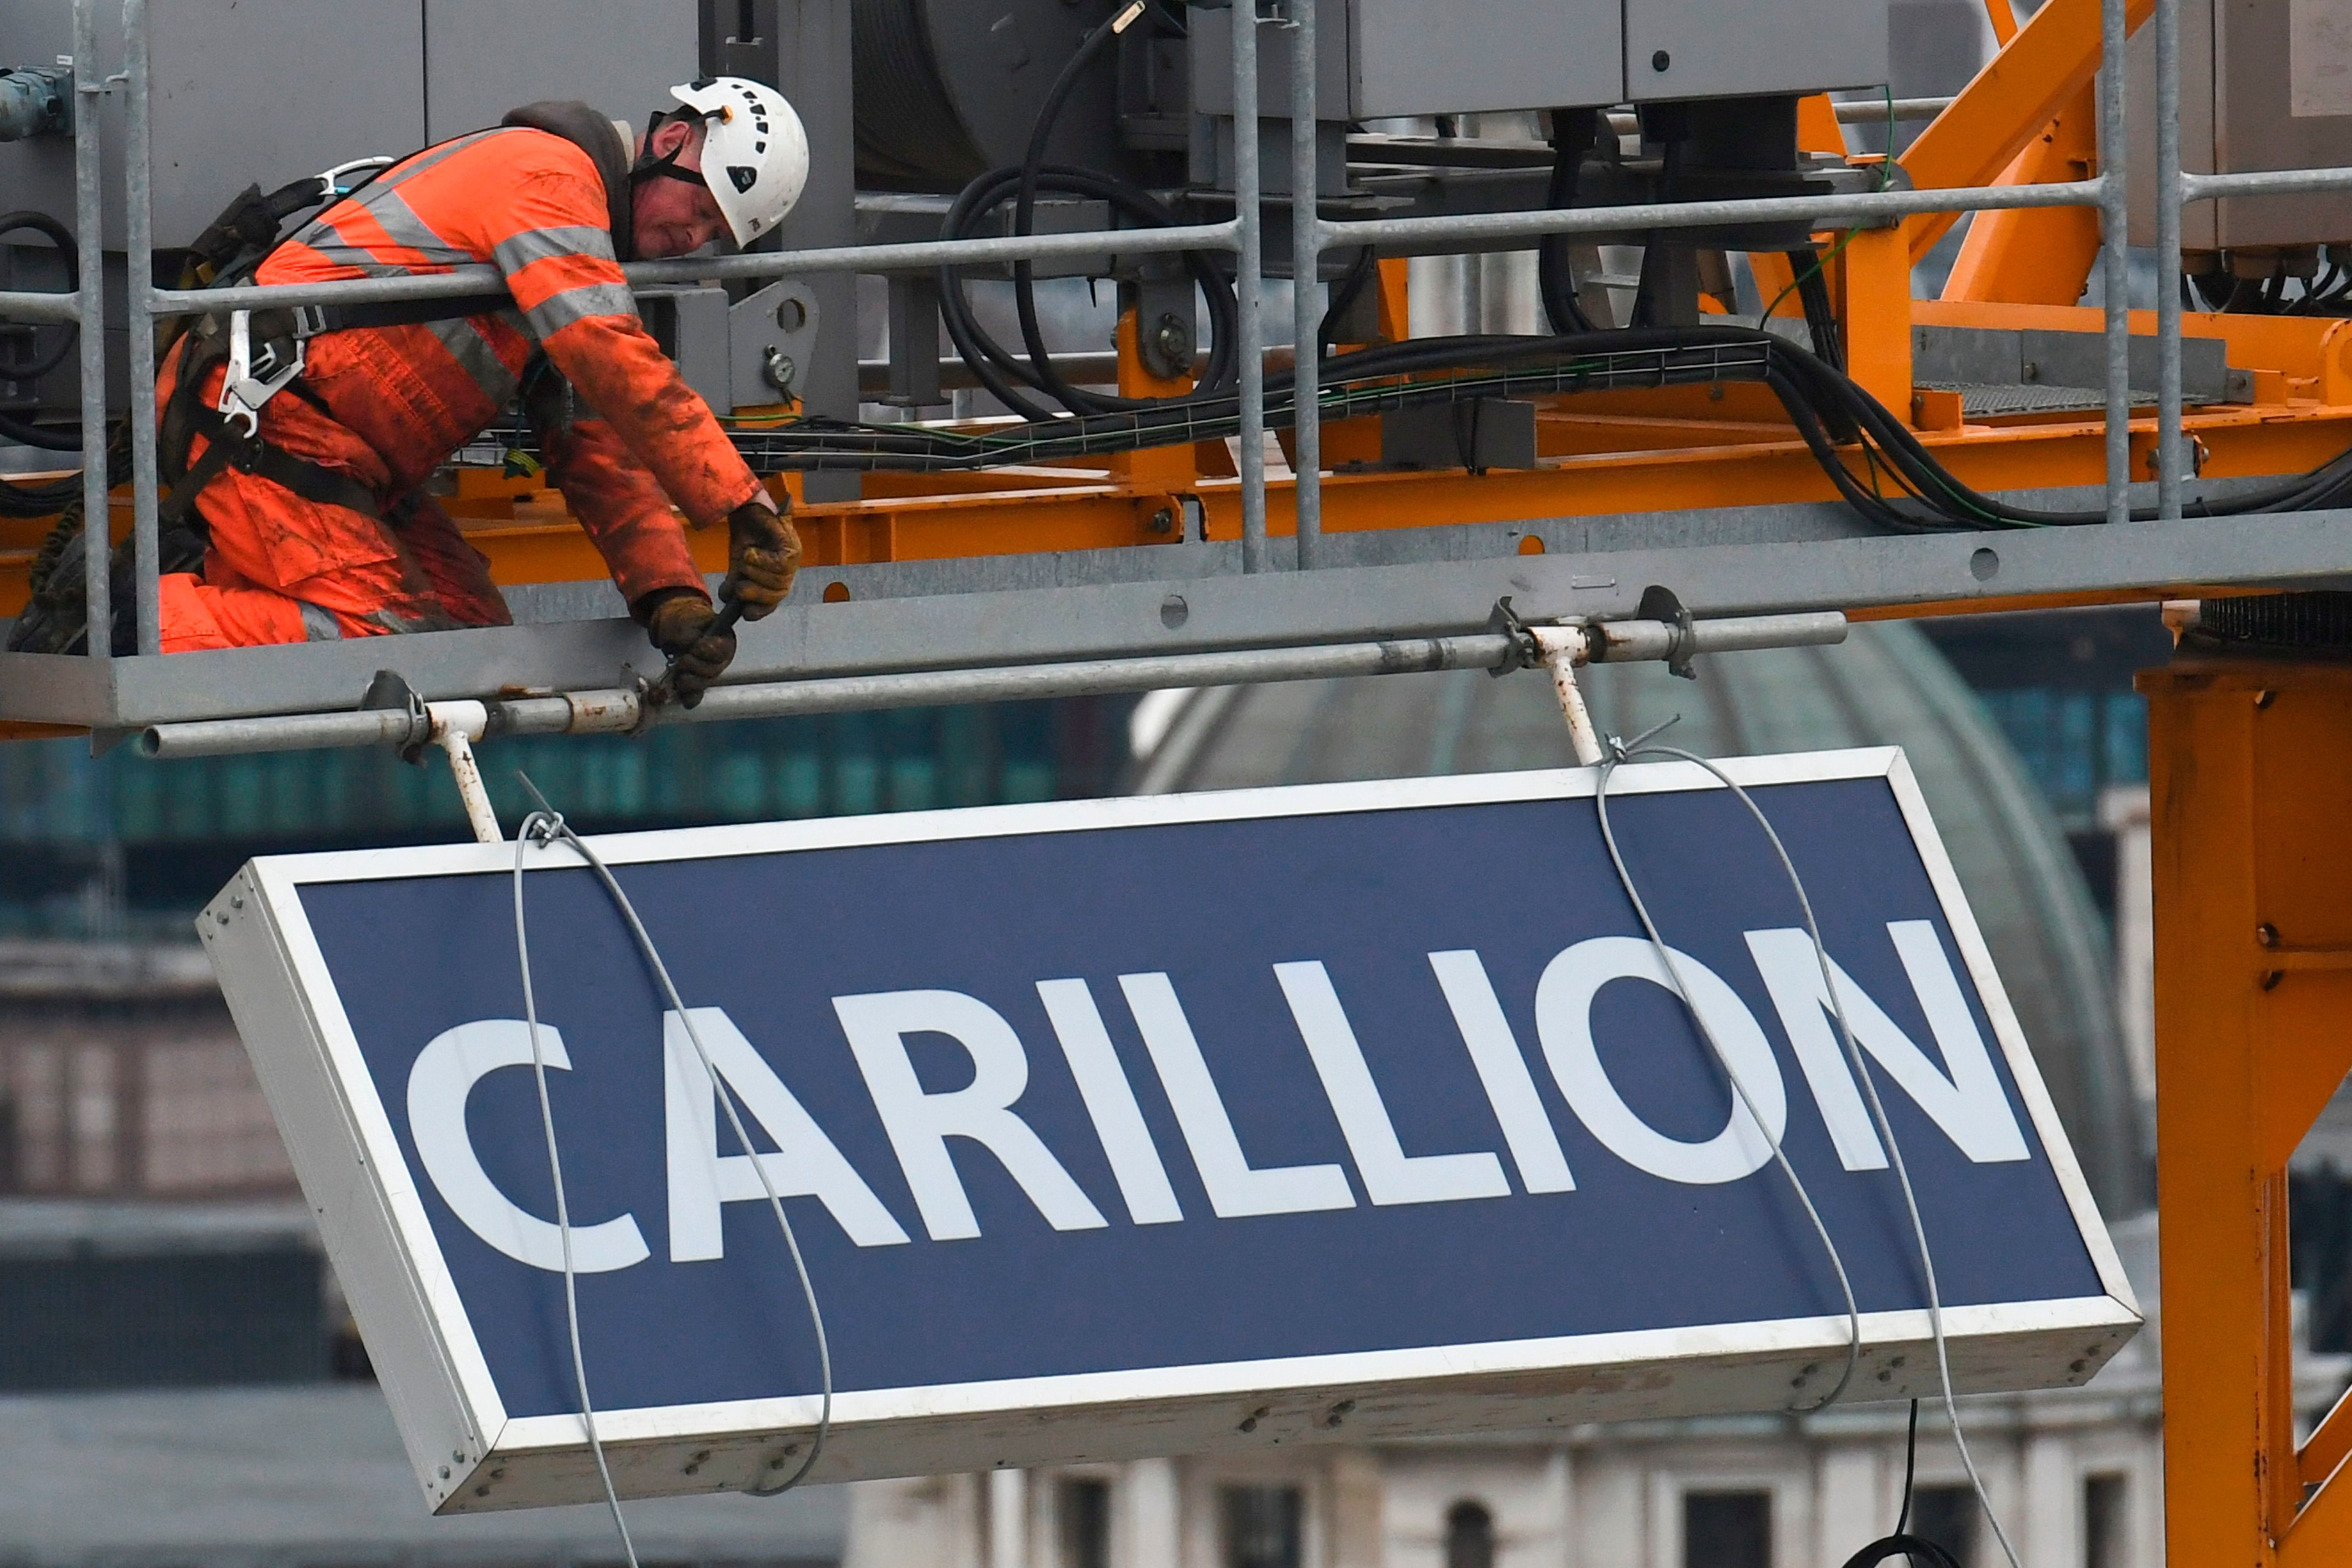 Carillion accountant KPMG faces probe by watchdog